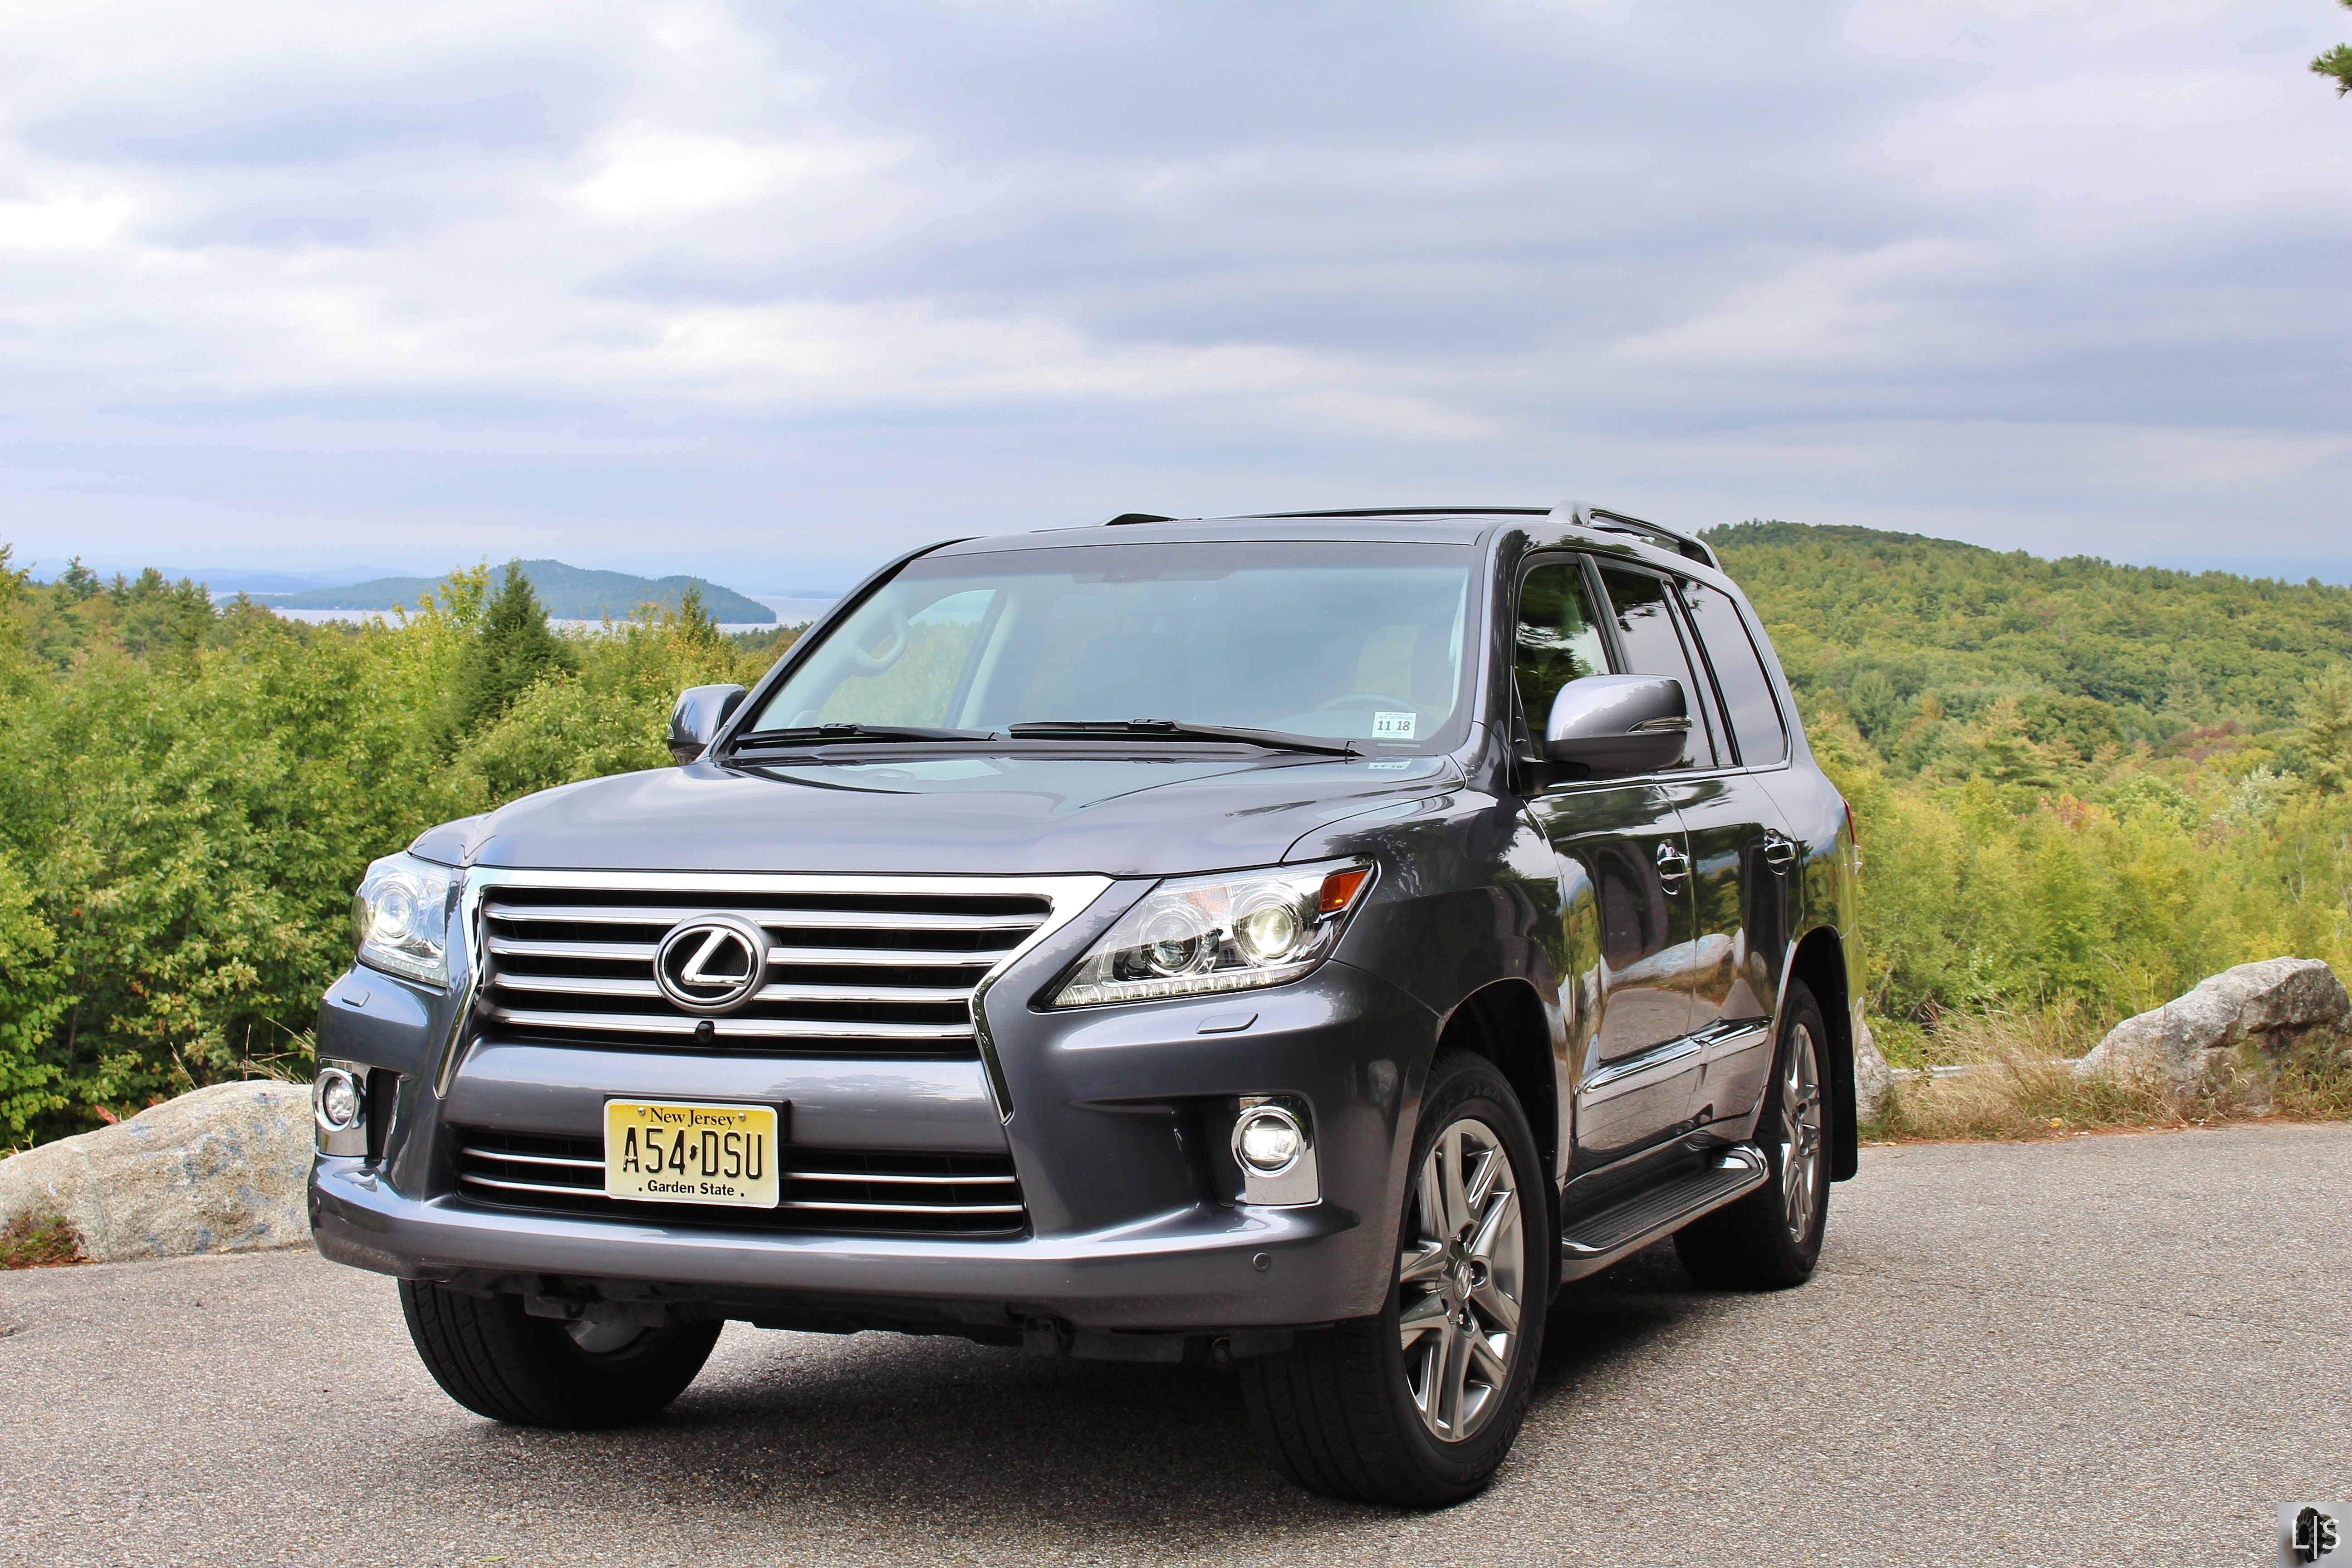 mammoth 2014 lexus lx570 limited slip blog. Black Bedroom Furniture Sets. Home Design Ideas